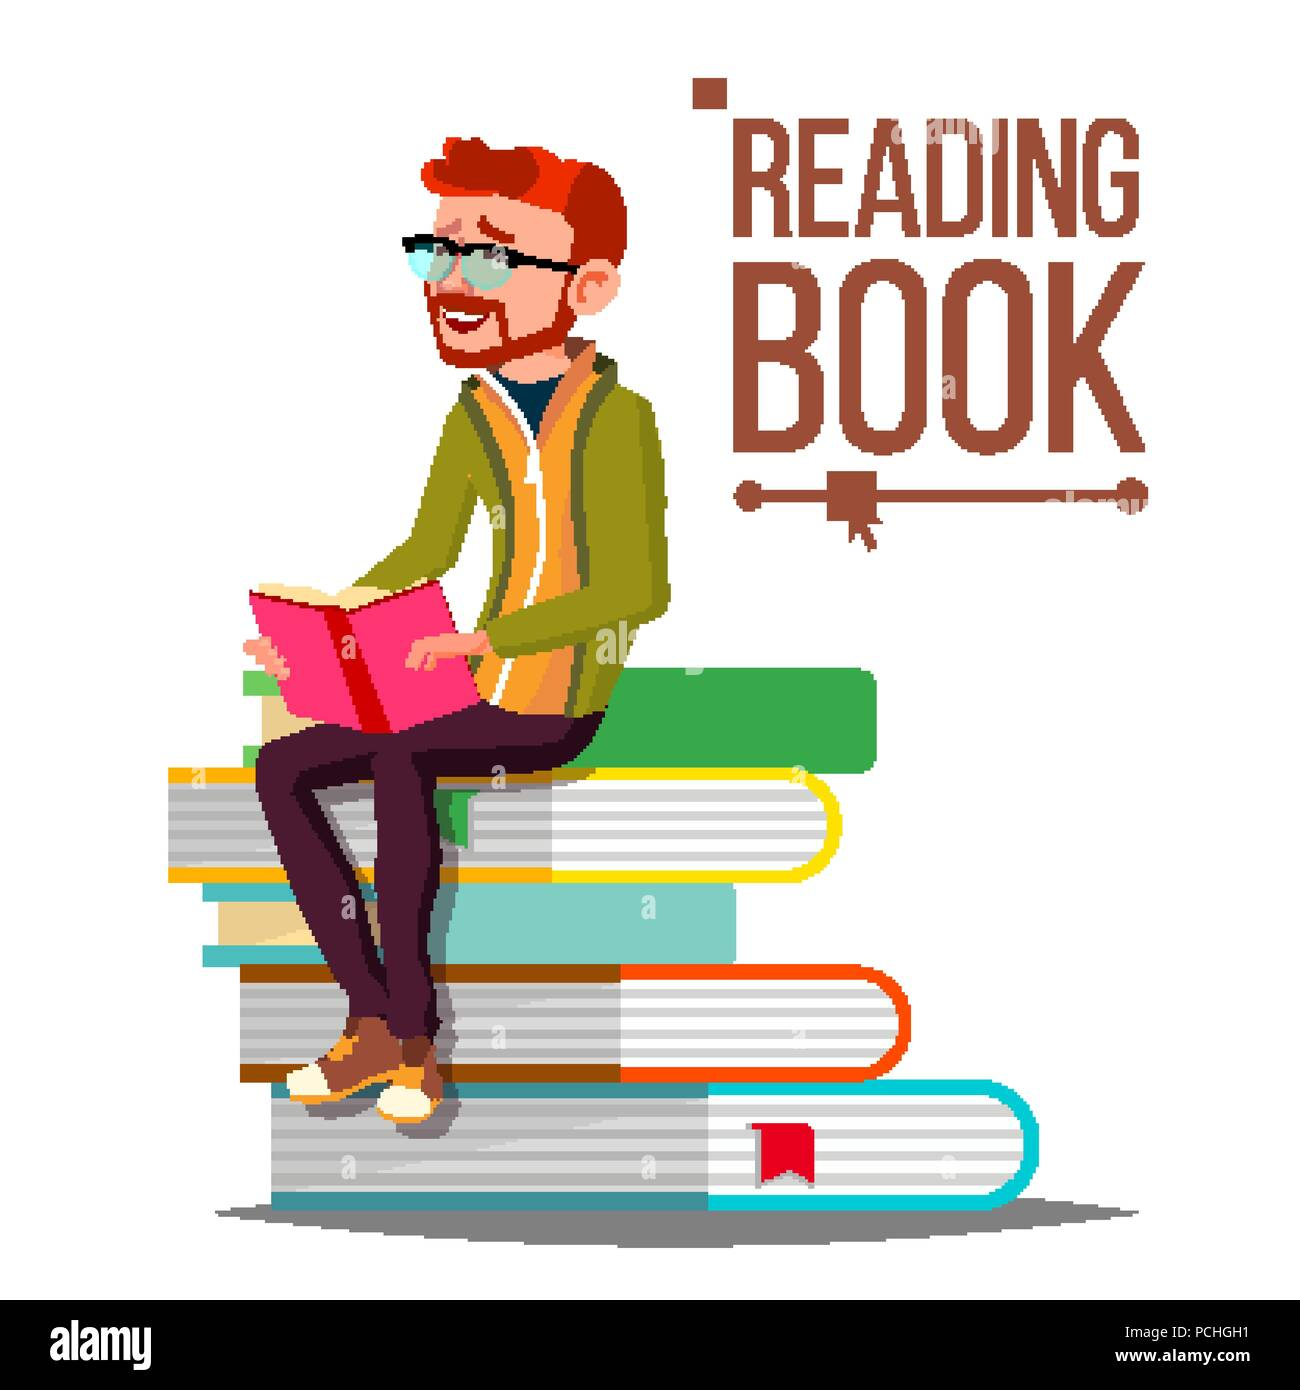 Man Reading Book Vecteur Pile De Livres Geants